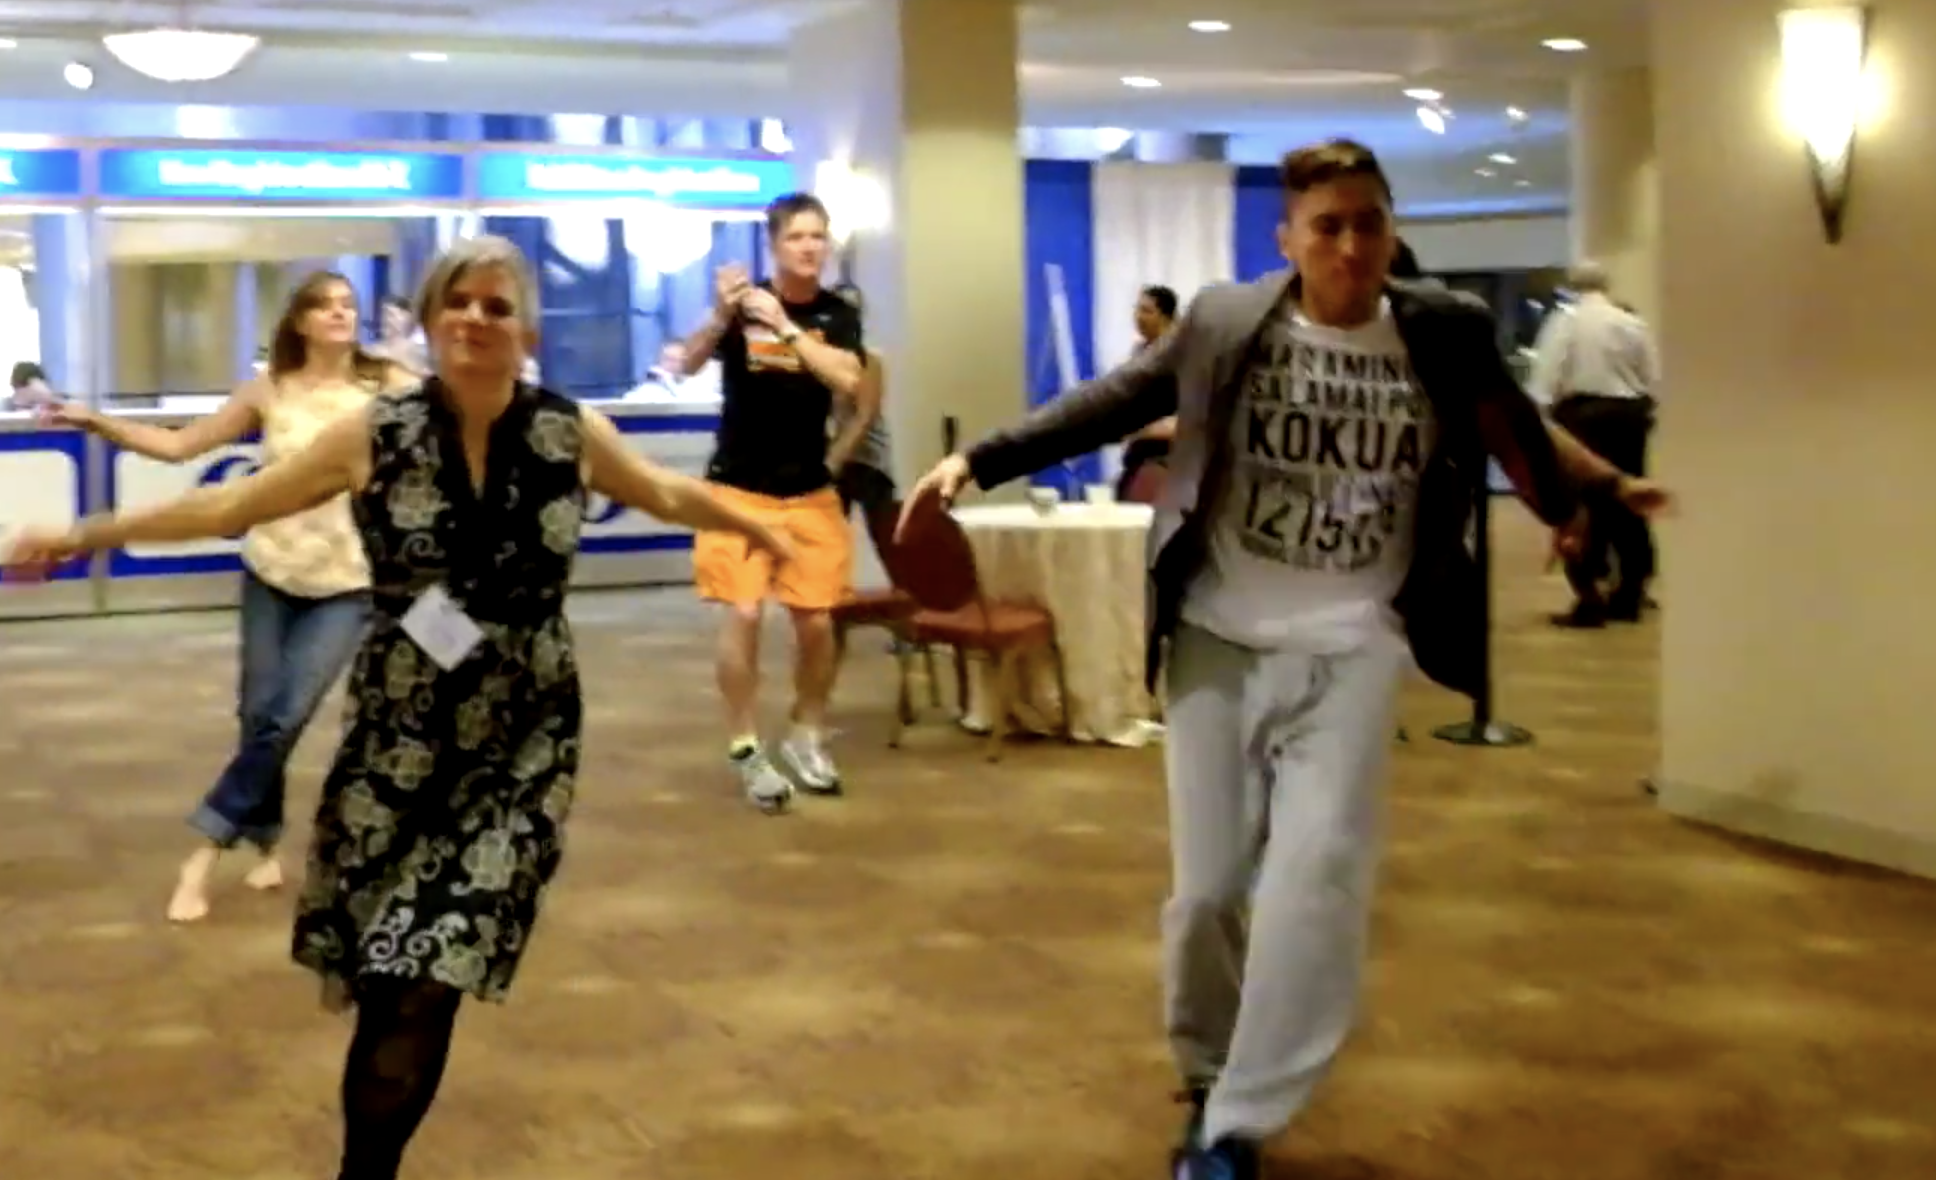 One white woman and Brown man dance in a lobby